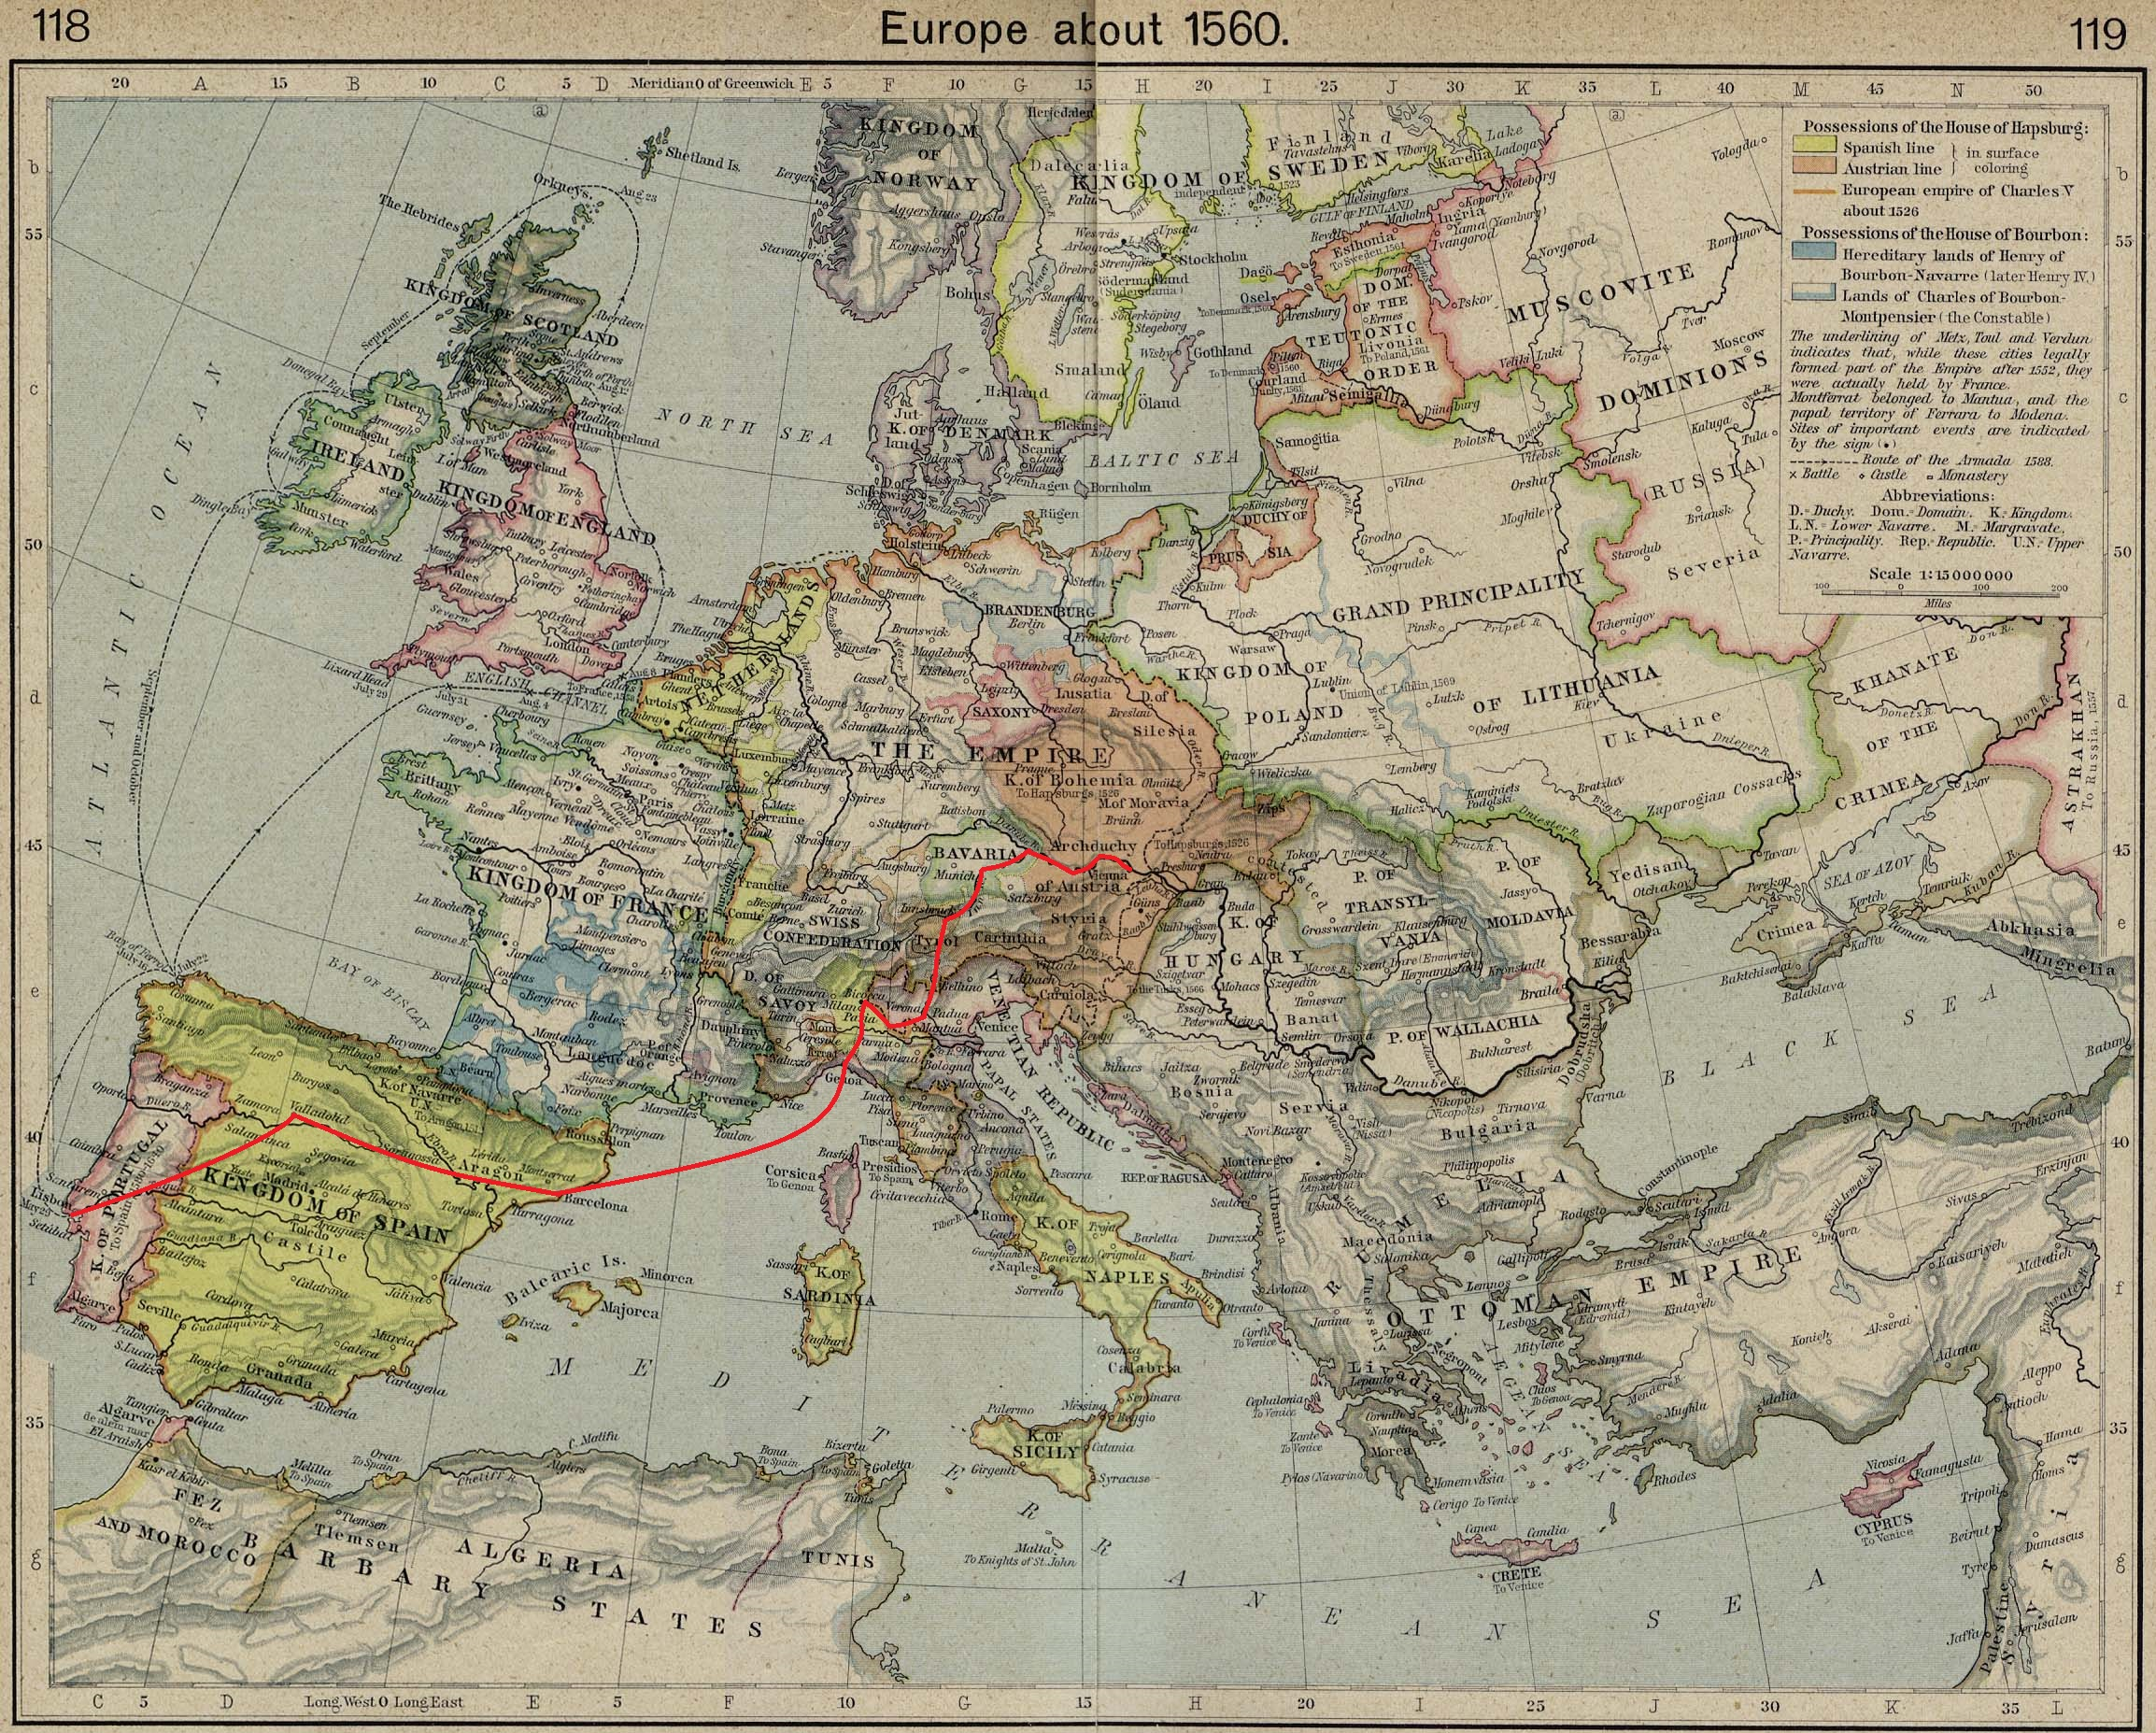 soliman-itinerary-map-europe_1560.jpg